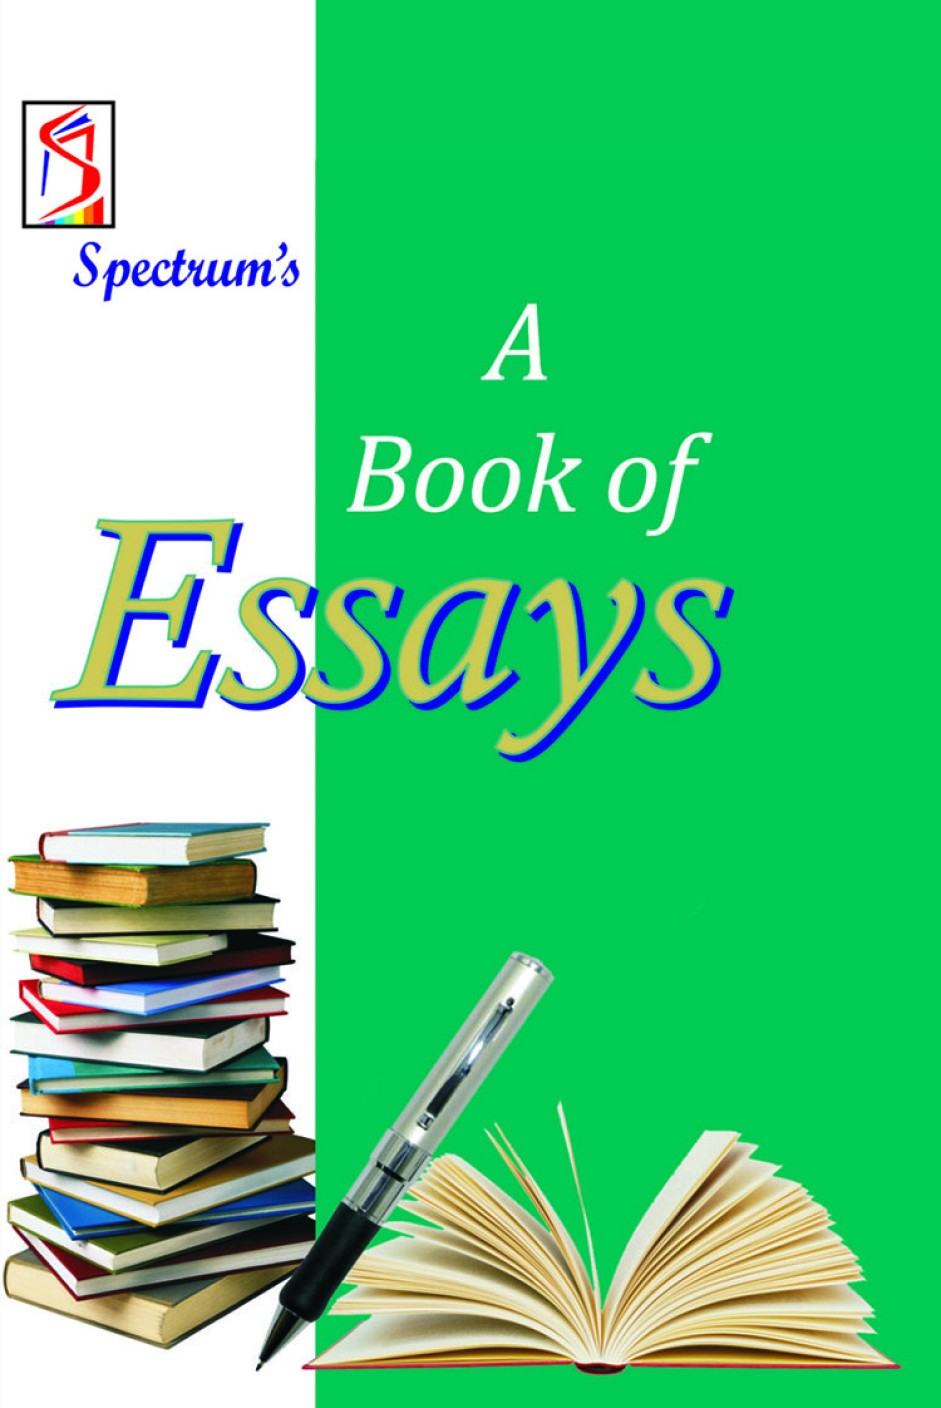 books vs technology essay 1984 book essay 1794 words | 8 pages 1984 essay what do you think a normal human being needs to have a good, hearty life telescreens and technology in 1984 essay.